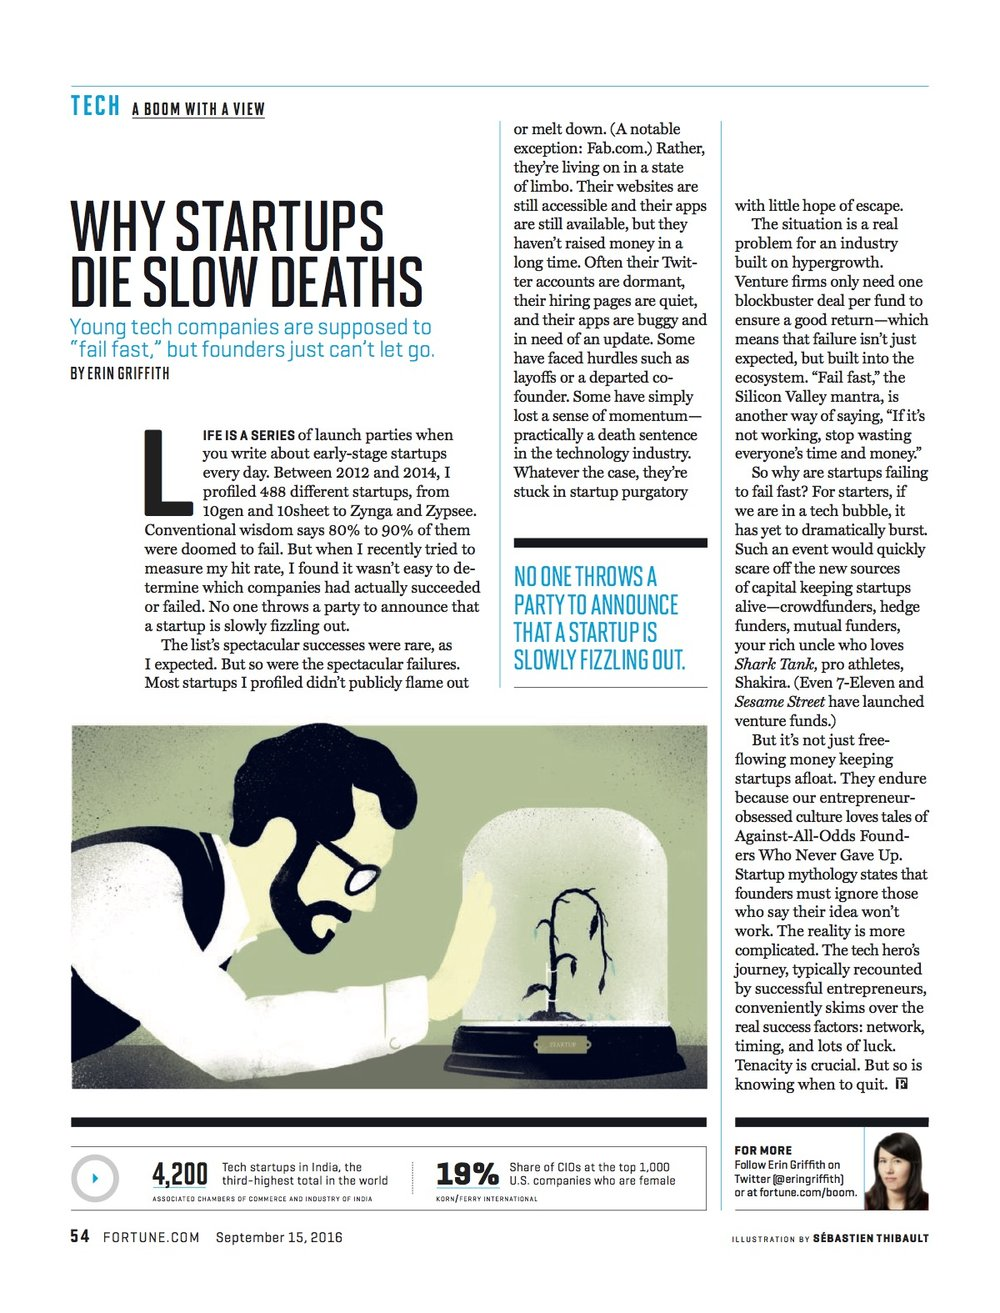 Why Startups Die Slow Deaths